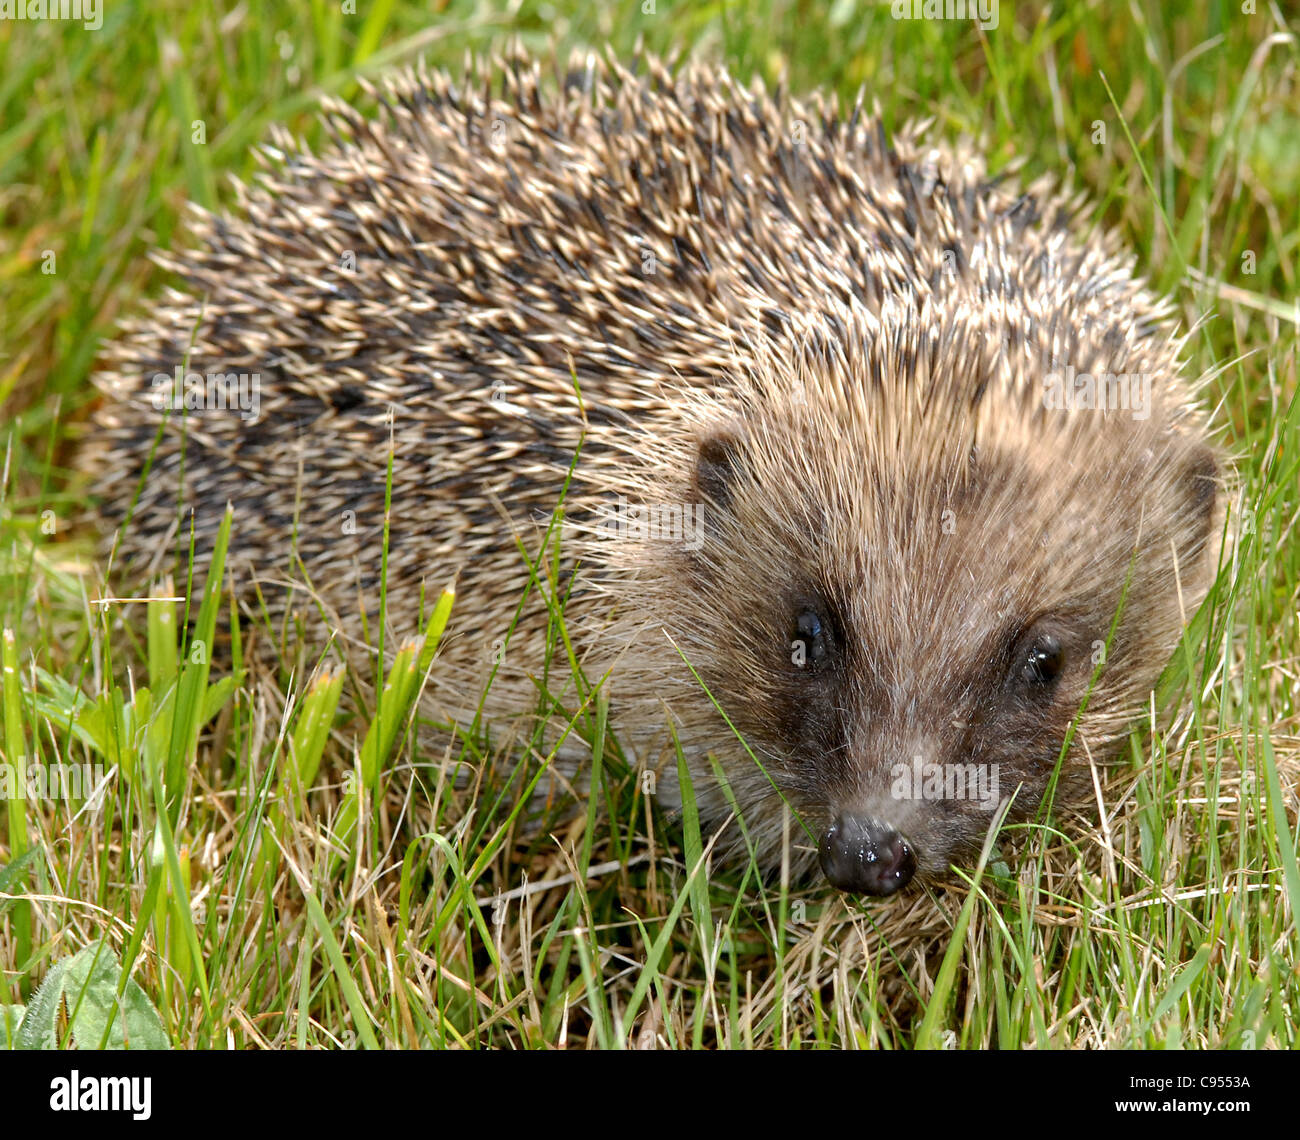 Hedgehog (Erinaceus europaeus) spiney coated mammal found less commonly in the UK - feeds maily on slugs, worms - Stock Image